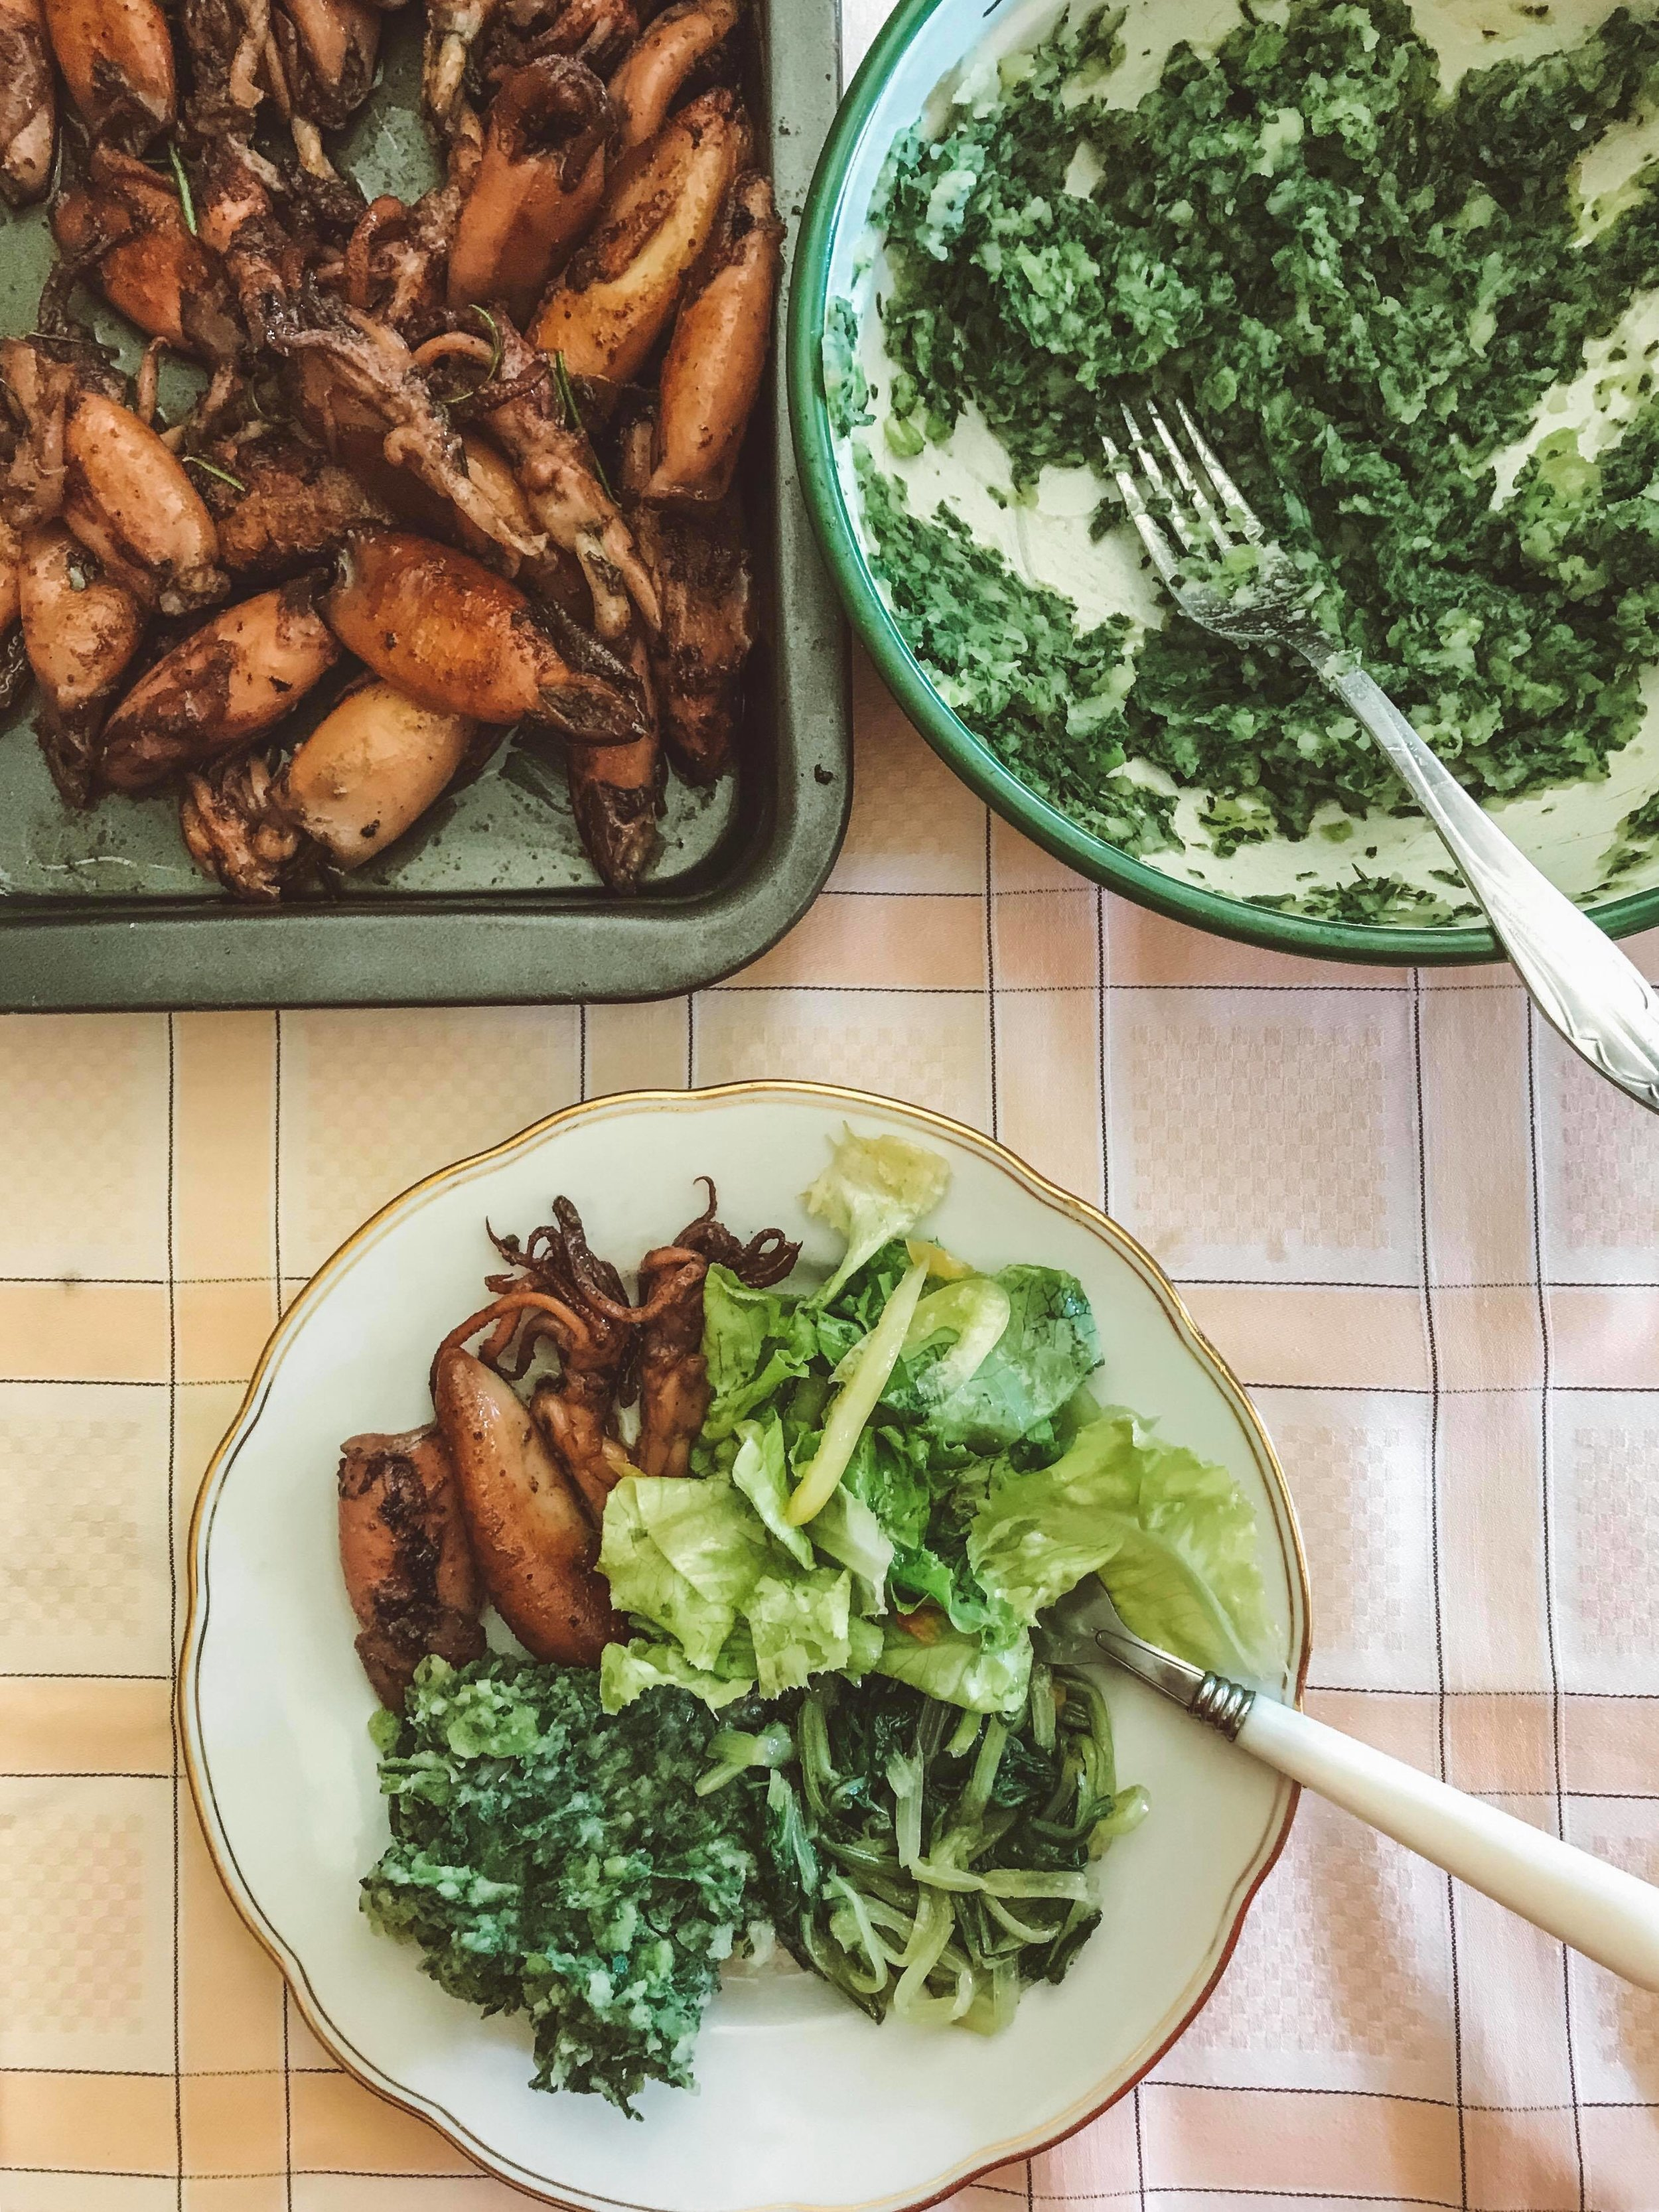 Homestyle feeds - BBQ squid, fresh salad, silverbeet and blitva (mashed potato and chard).